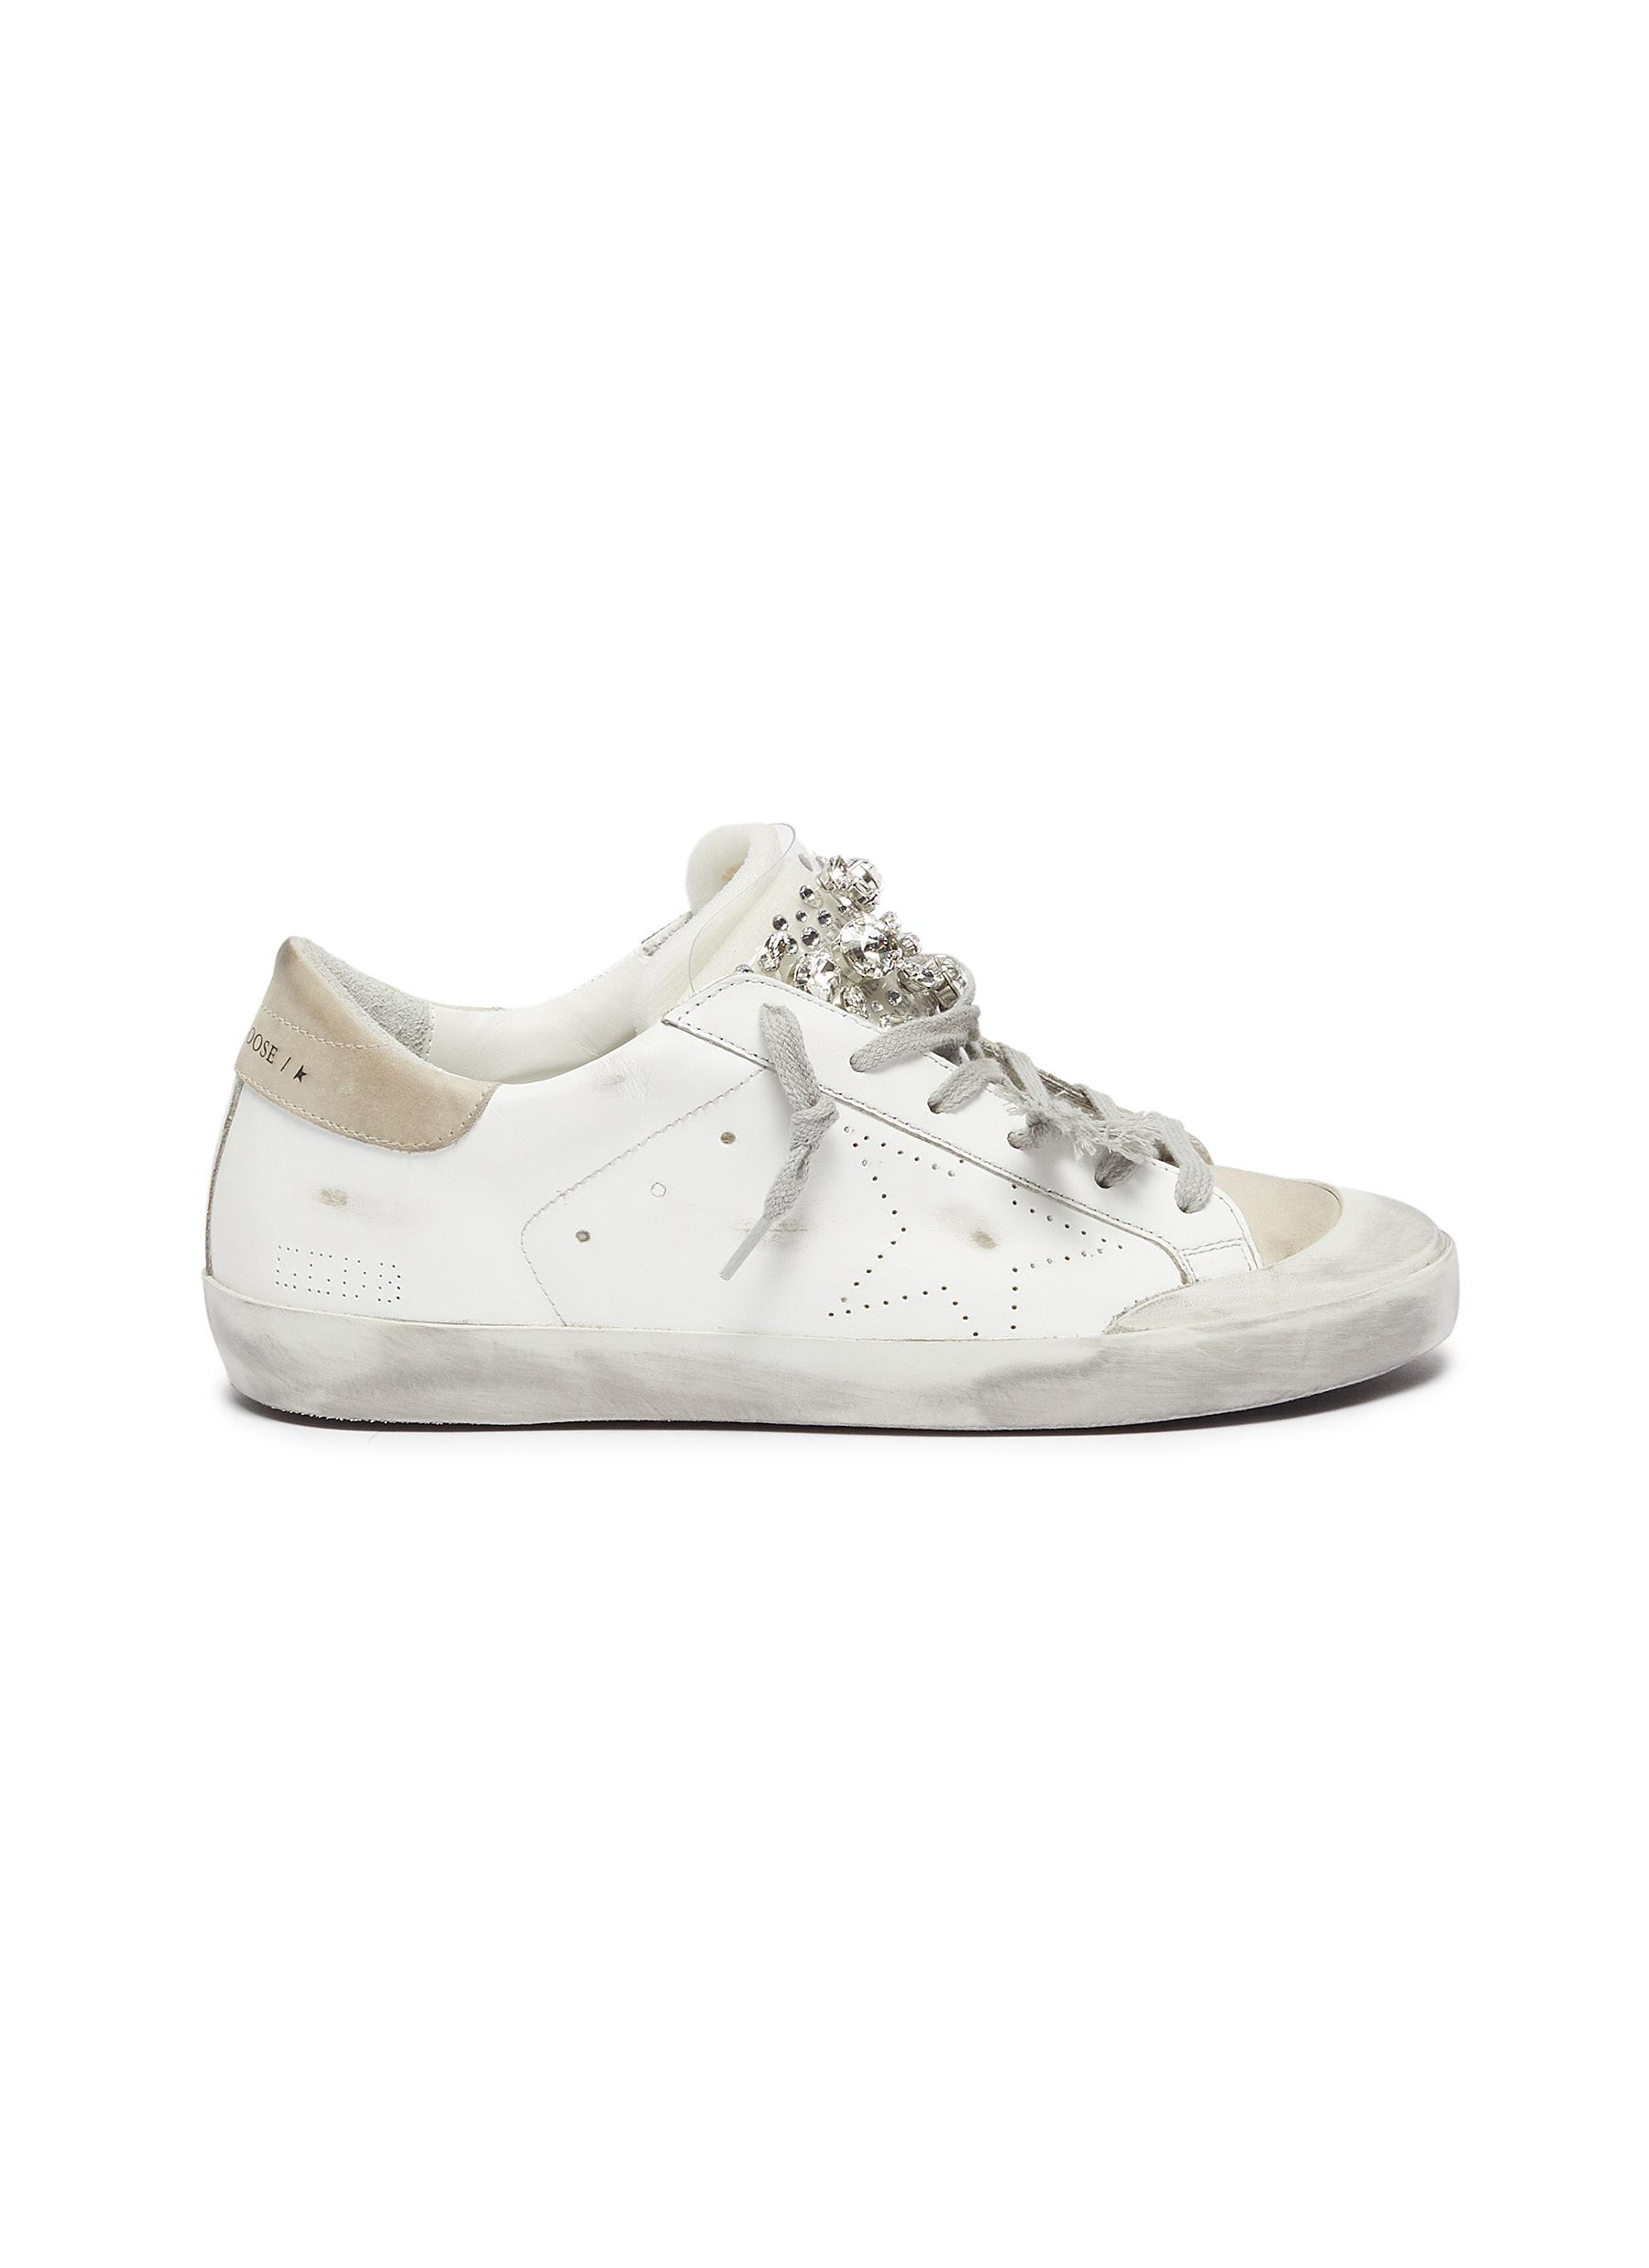 'Super-star' Strass Embellished Tongue Distressed Leather Sneakers